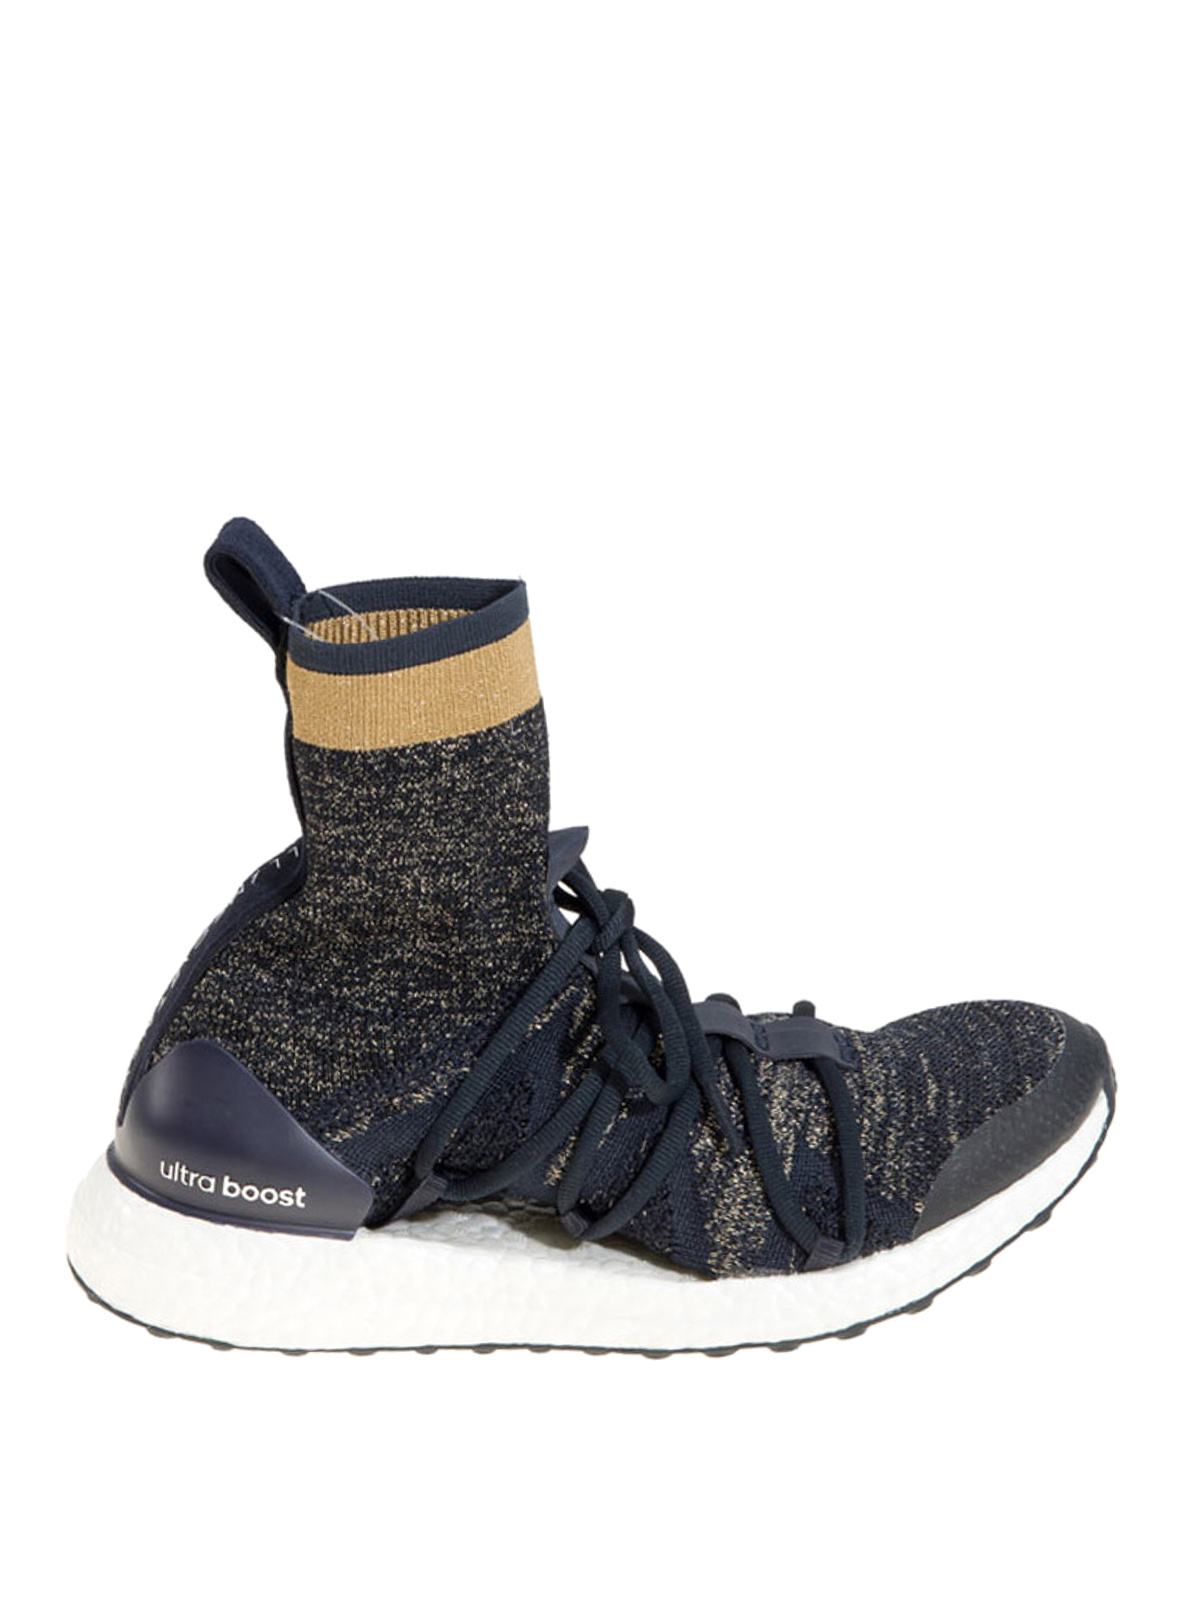 adidas by stella mccartney ultraboost x mid sneakers trainers by1834. Black Bedroom Furniture Sets. Home Design Ideas